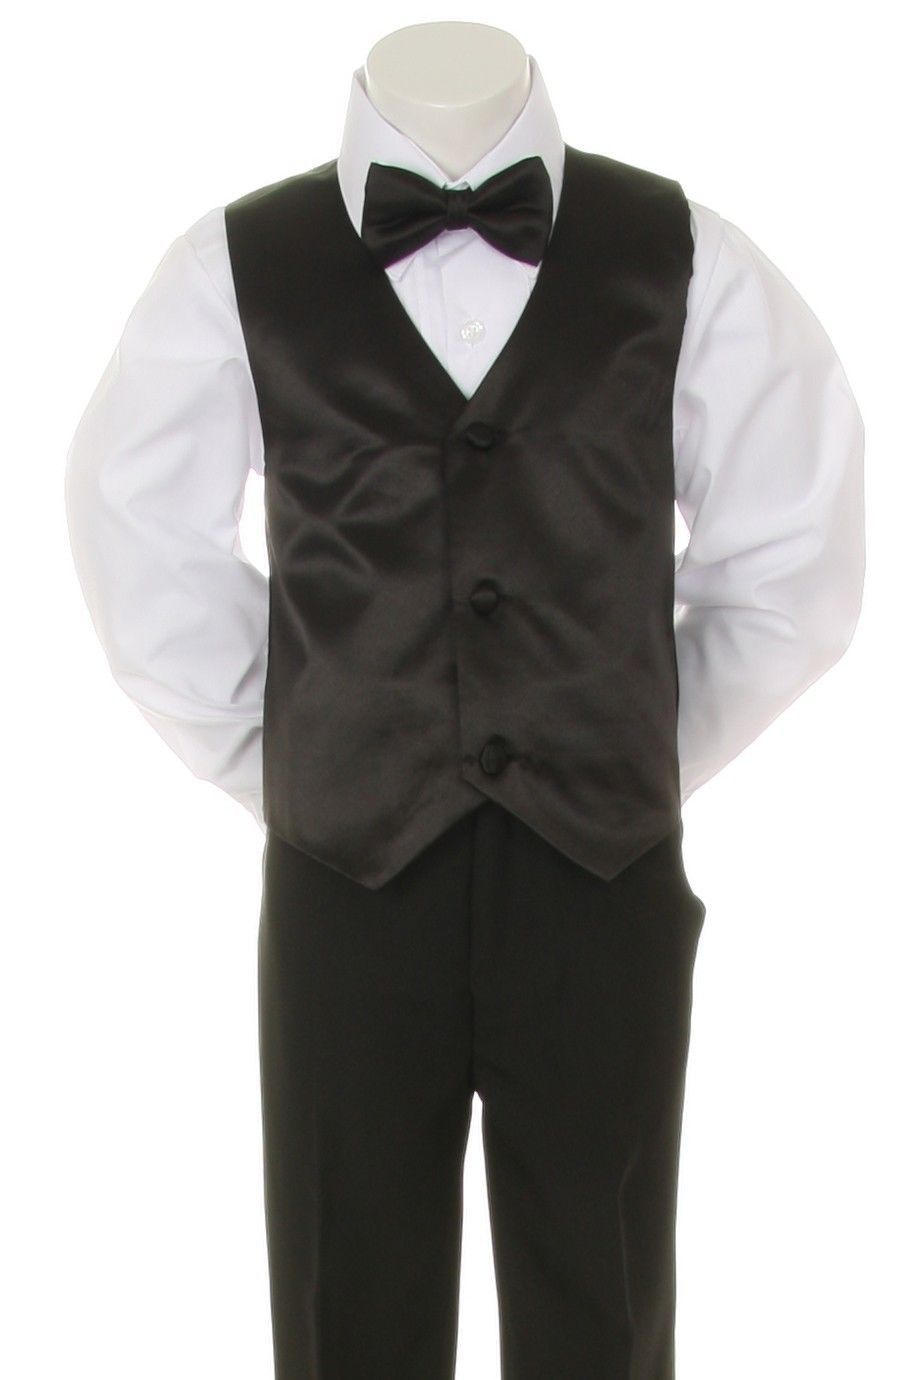 926c29045 New Baby Boy Formal Wedding Party 7pc Black and 26 similar items